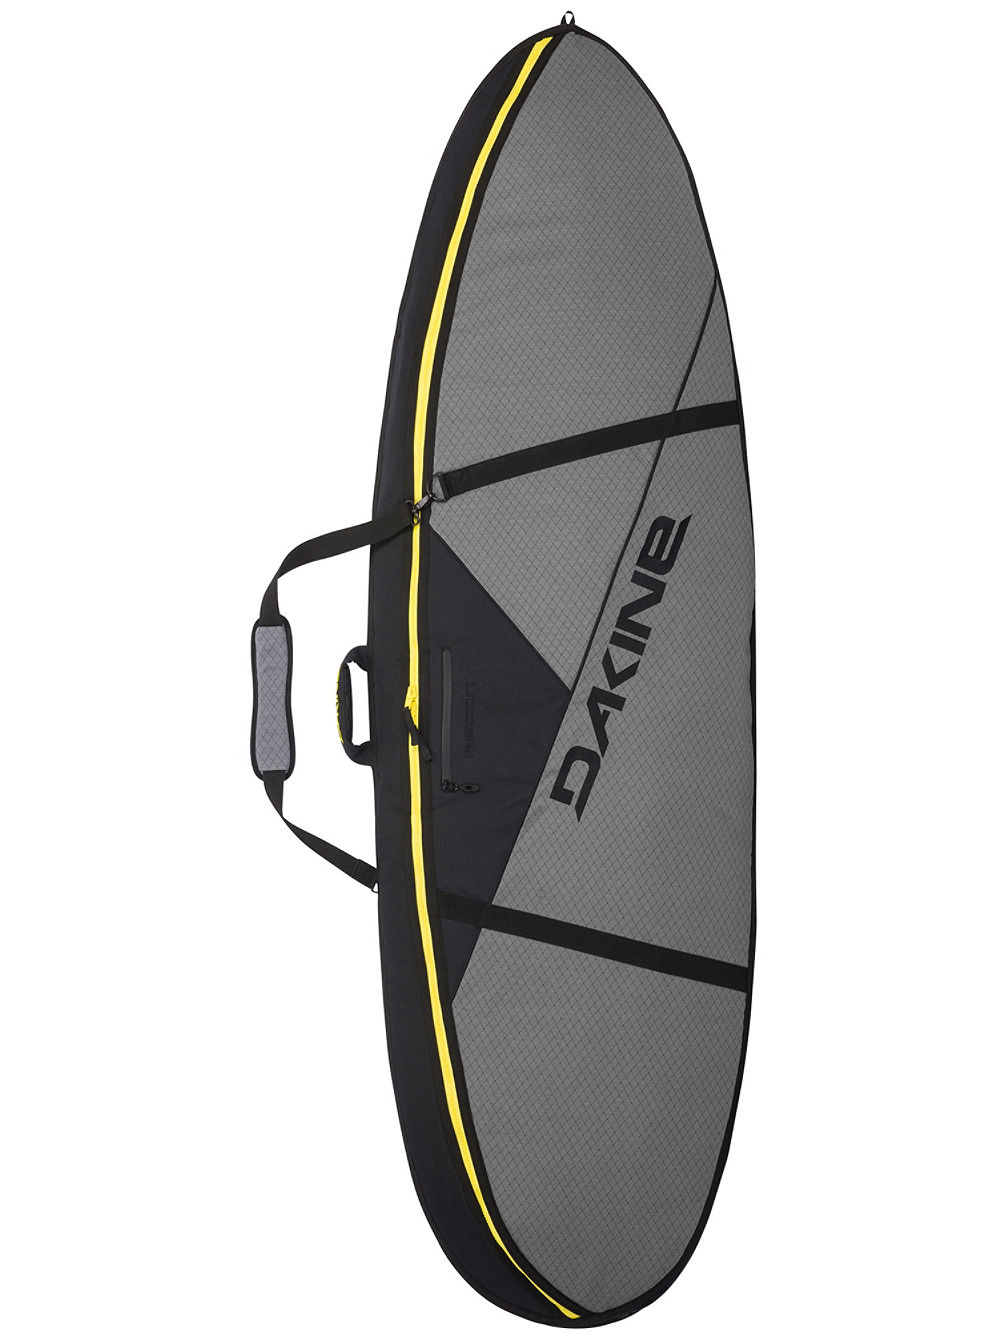 Recon Double Thruster 6'6'' Surfboard Ba